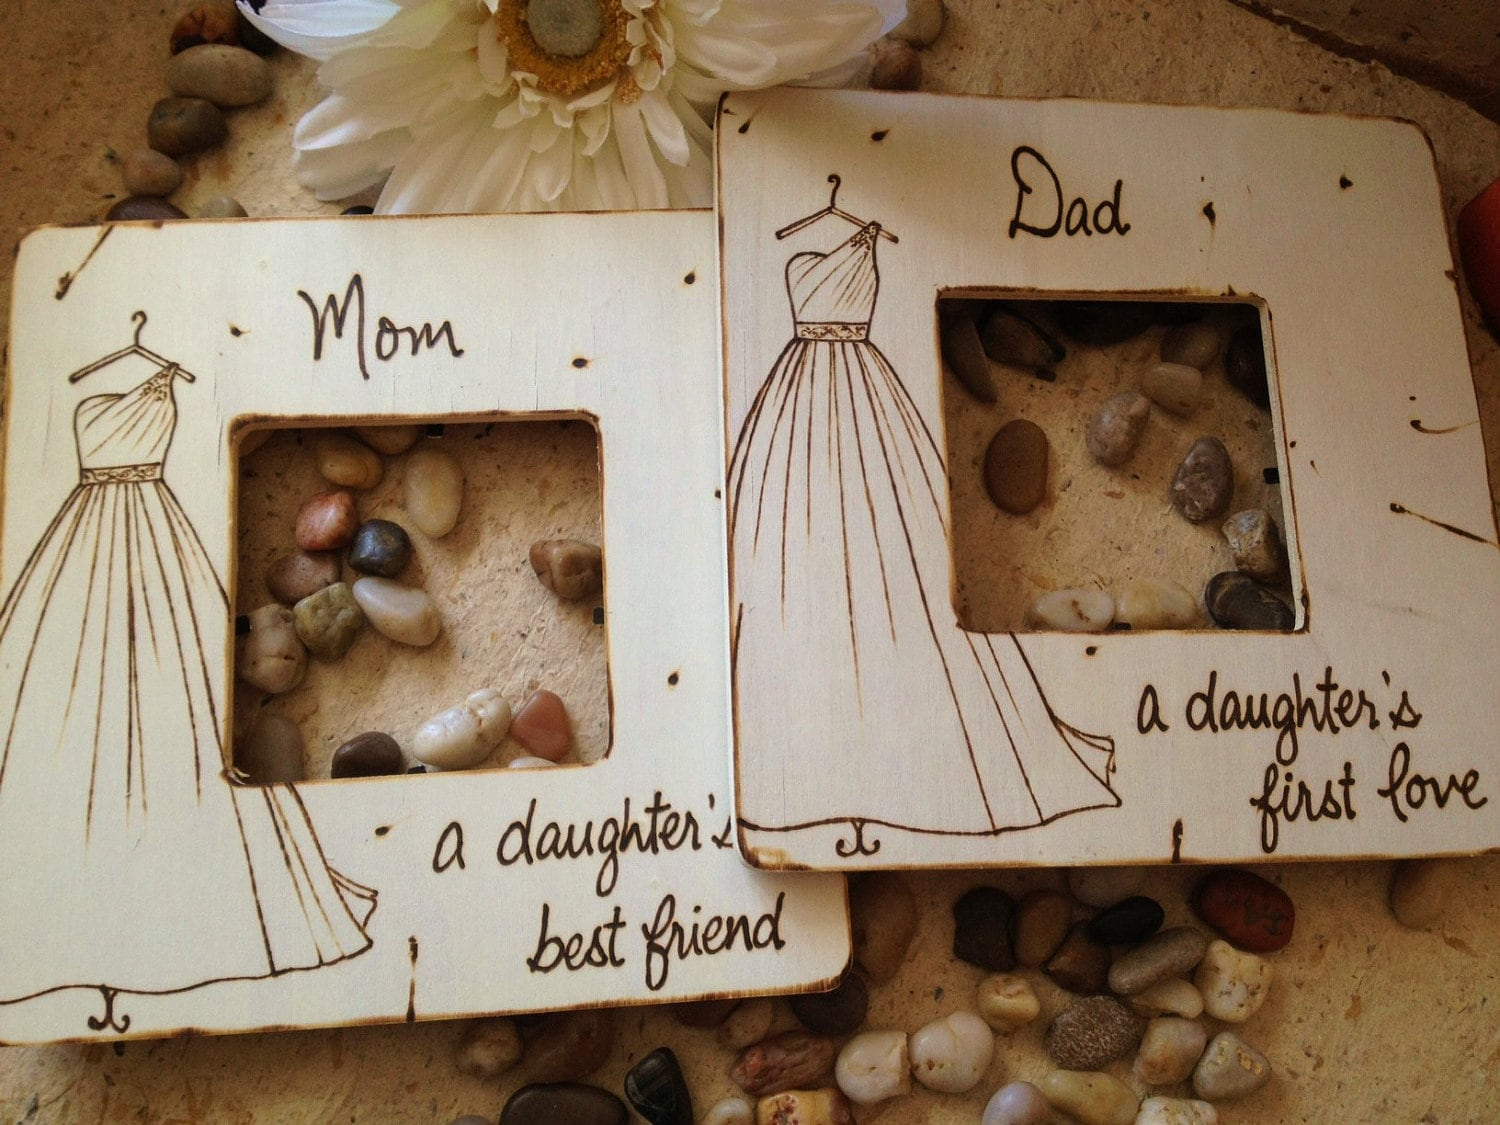 Wedding Gift Ideas For Mom: Set Of 2 Wedding Gifts For Parents Of The Bride Mom And Dad